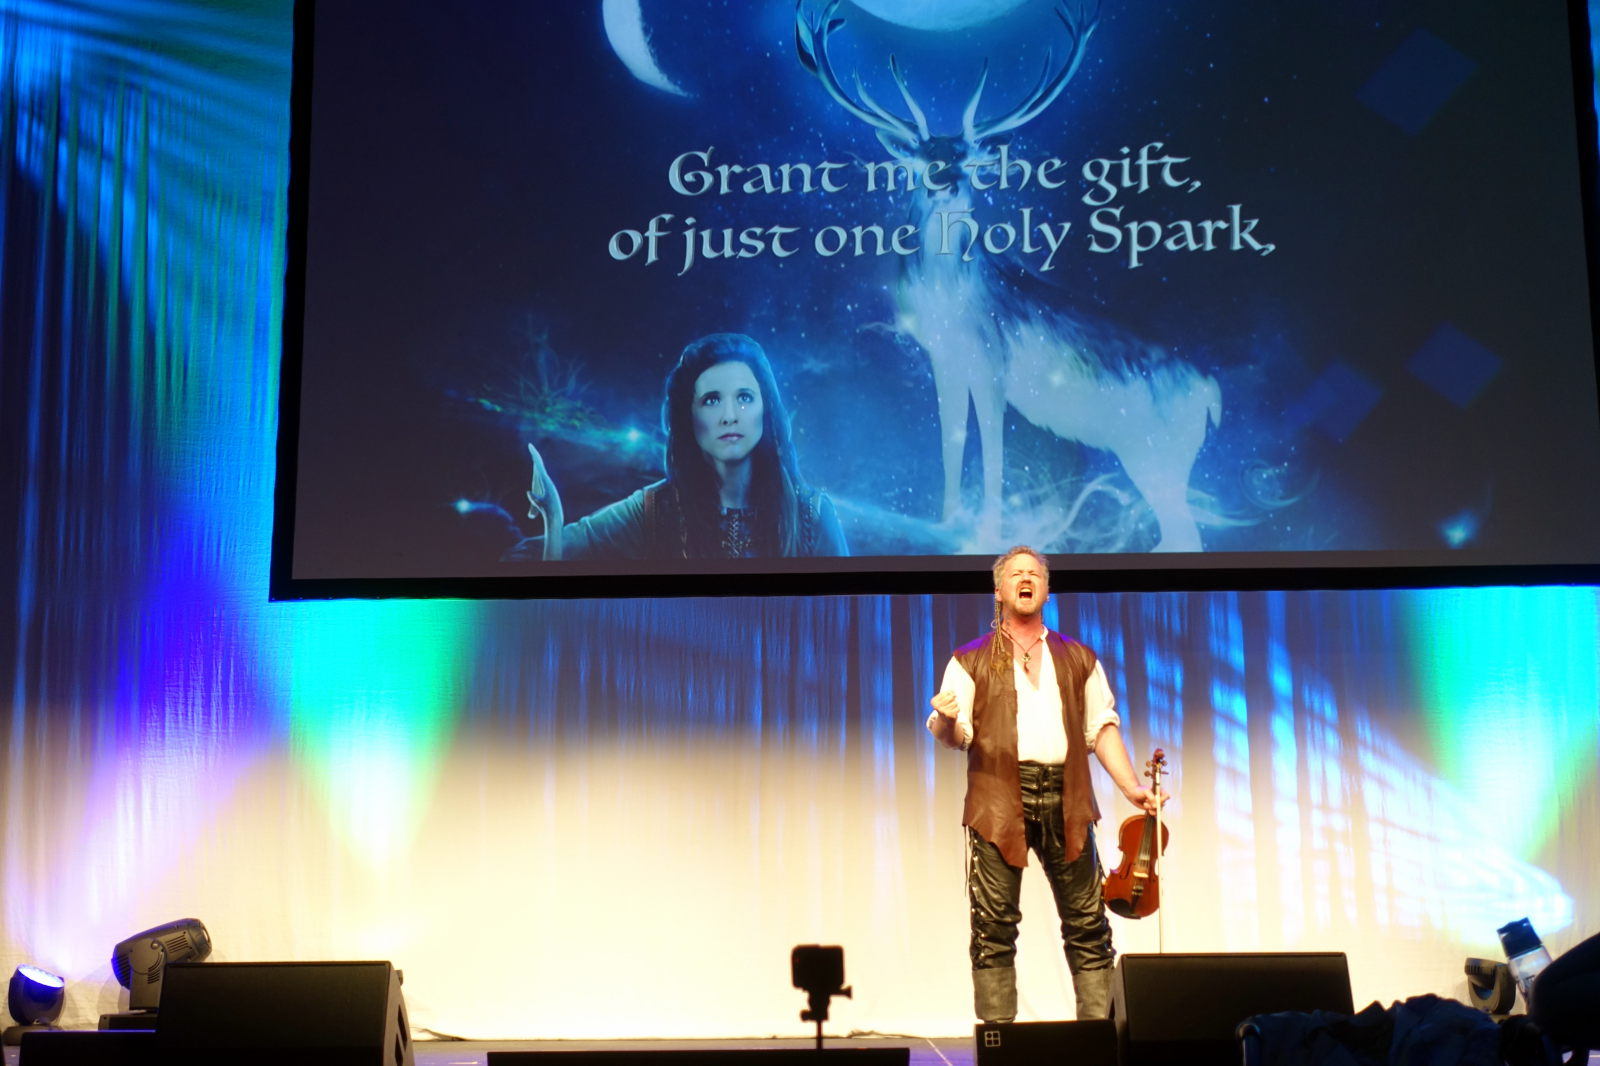 Person standing on a stage with a violin in his hand. Behind the person there is a screen with woman, deer and text: 'Grant me the gift, of just one holy Spark'.